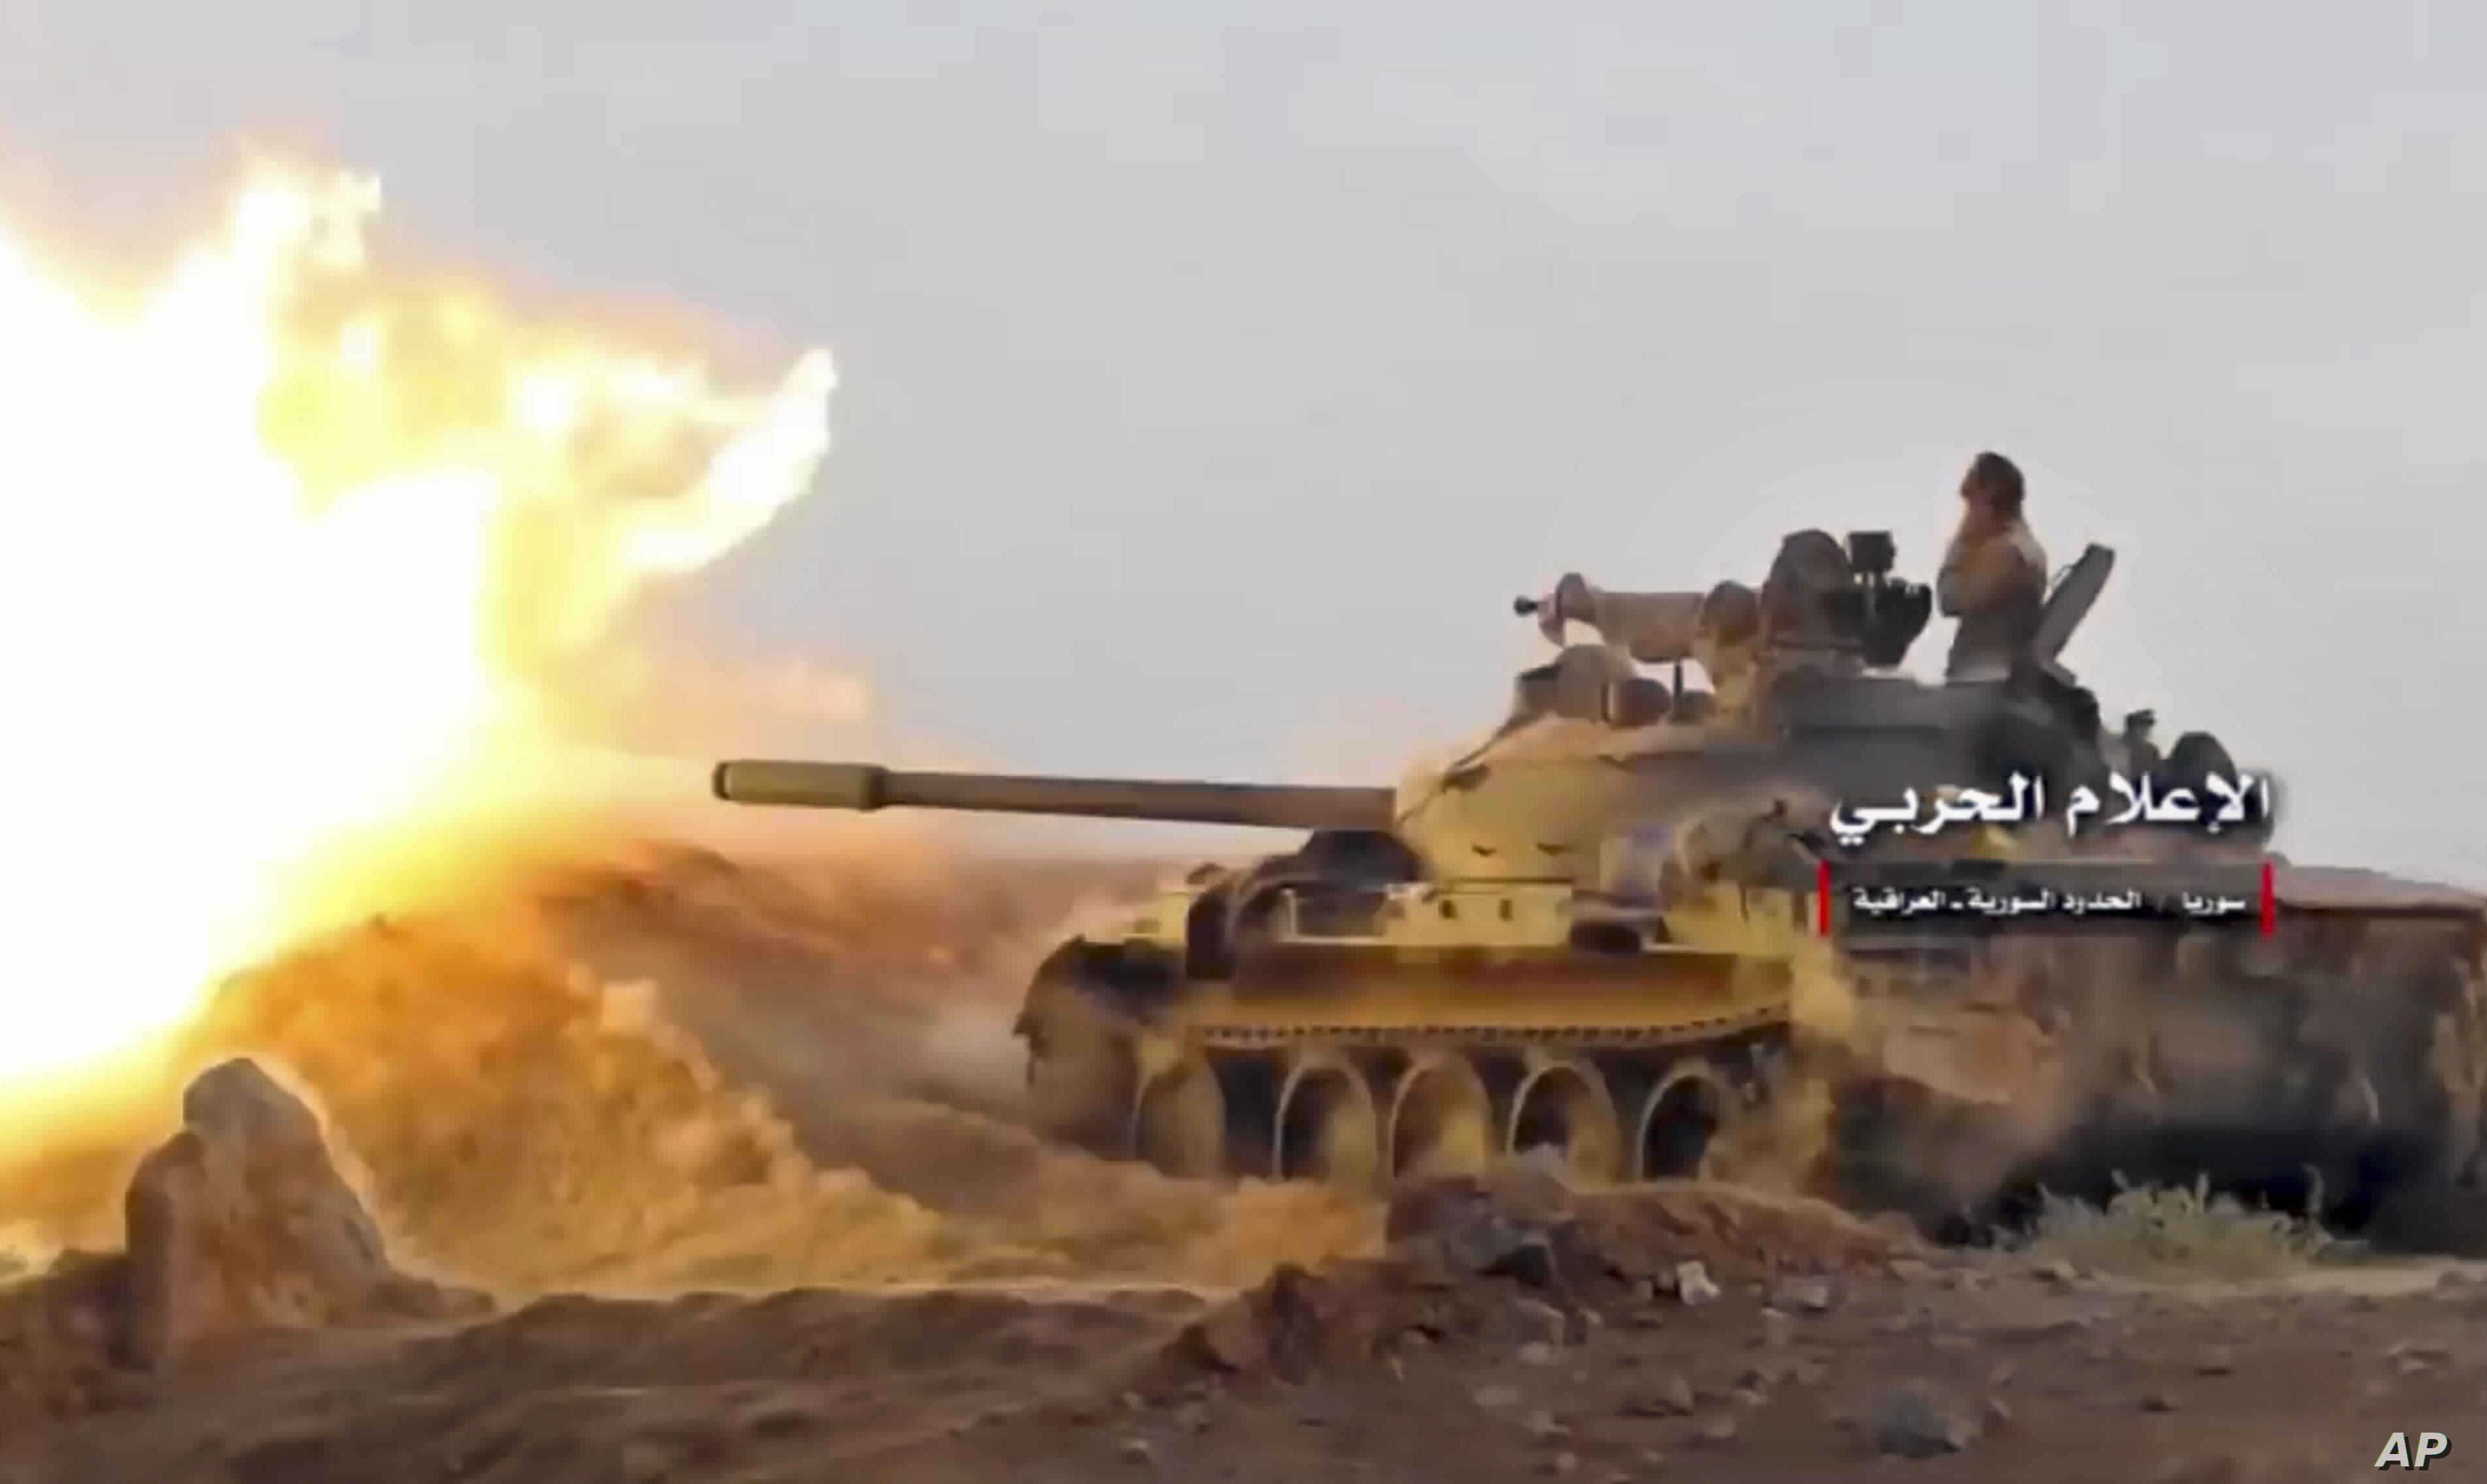 This frame grab from video provided Nov 8, 2017, by the government-controlled Syrian Central Military Media, shows a tank firing on militants' positions on the Iraq-Syria border.